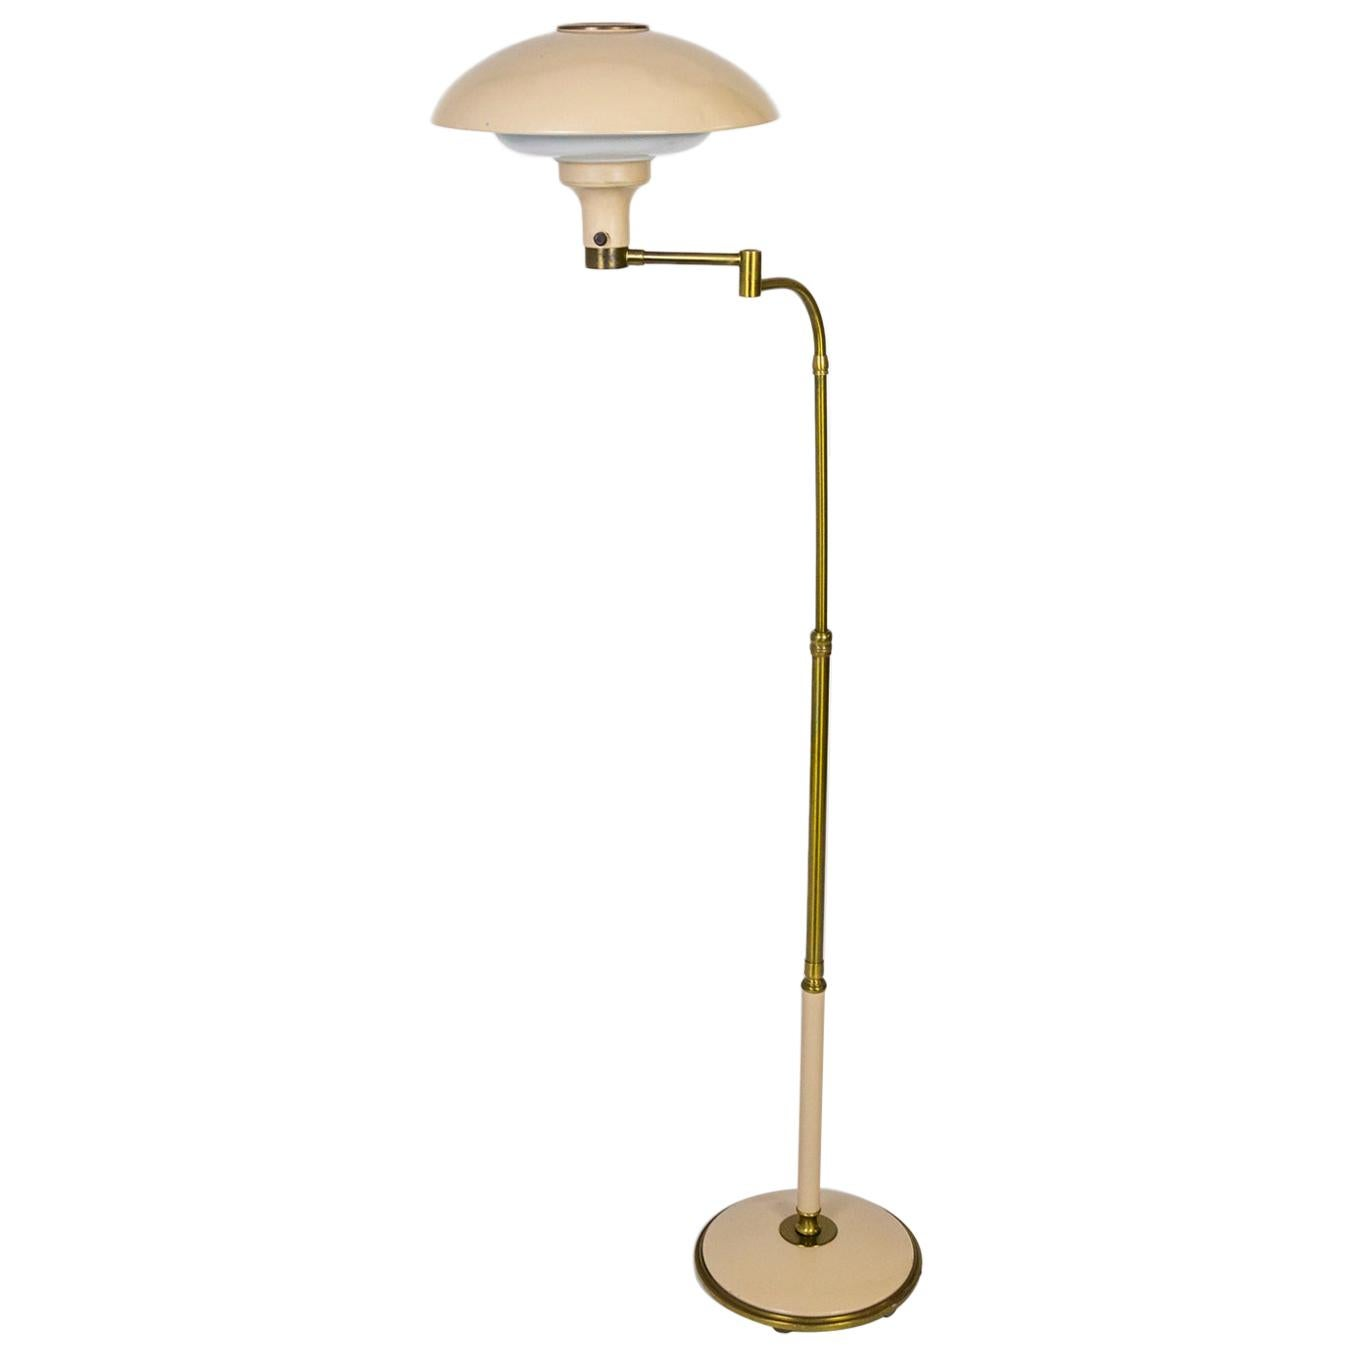 Dazor 1950s Flying Saucer Floor Lamp in Brass & Buff Lacquer